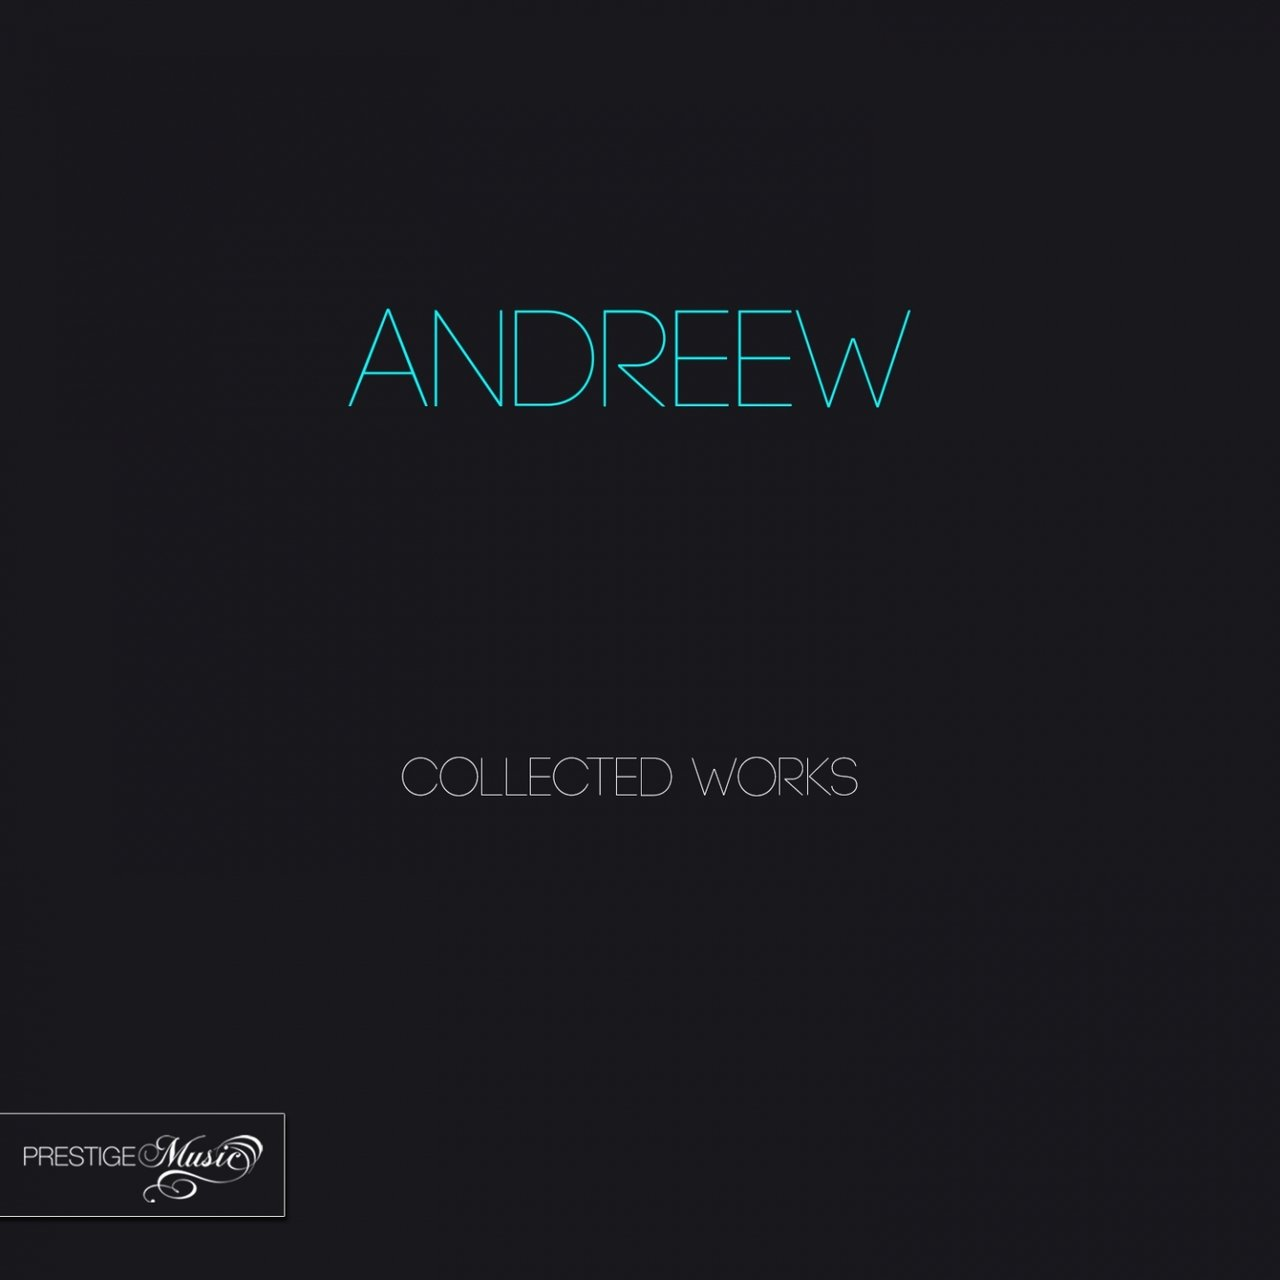 AndReew Collected Works